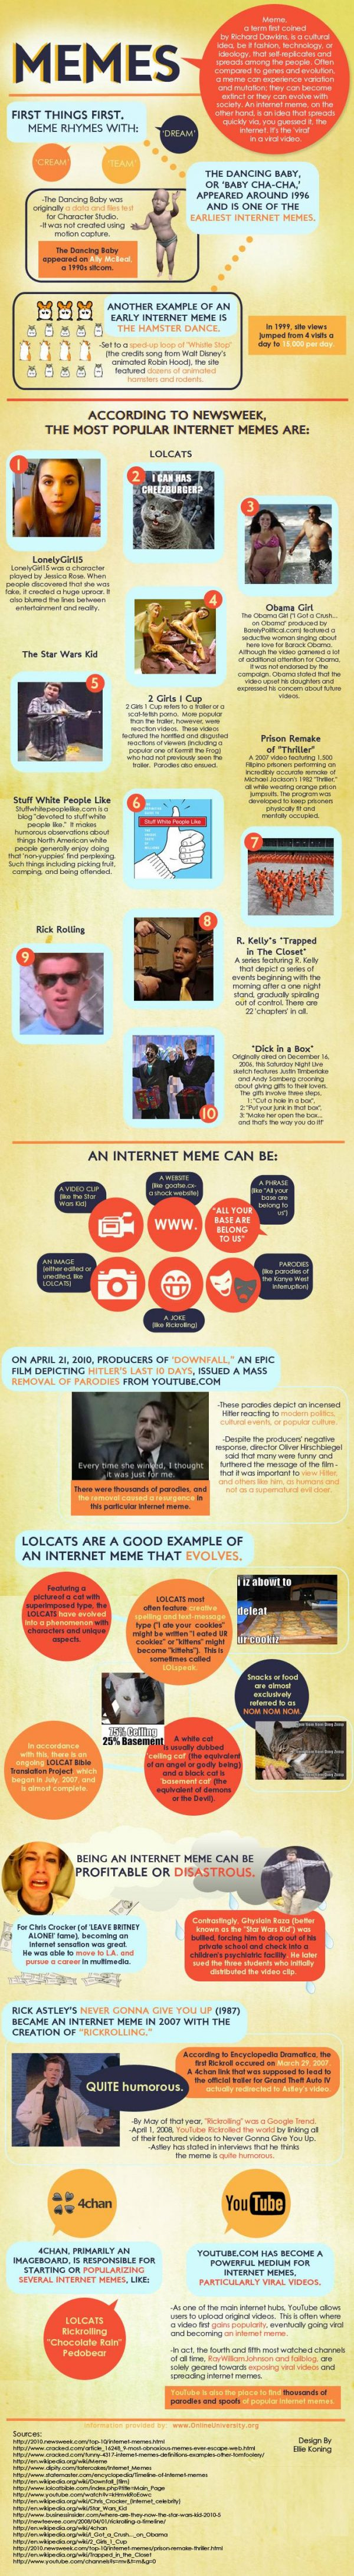 A Guide to Internet Memes (Infographic)